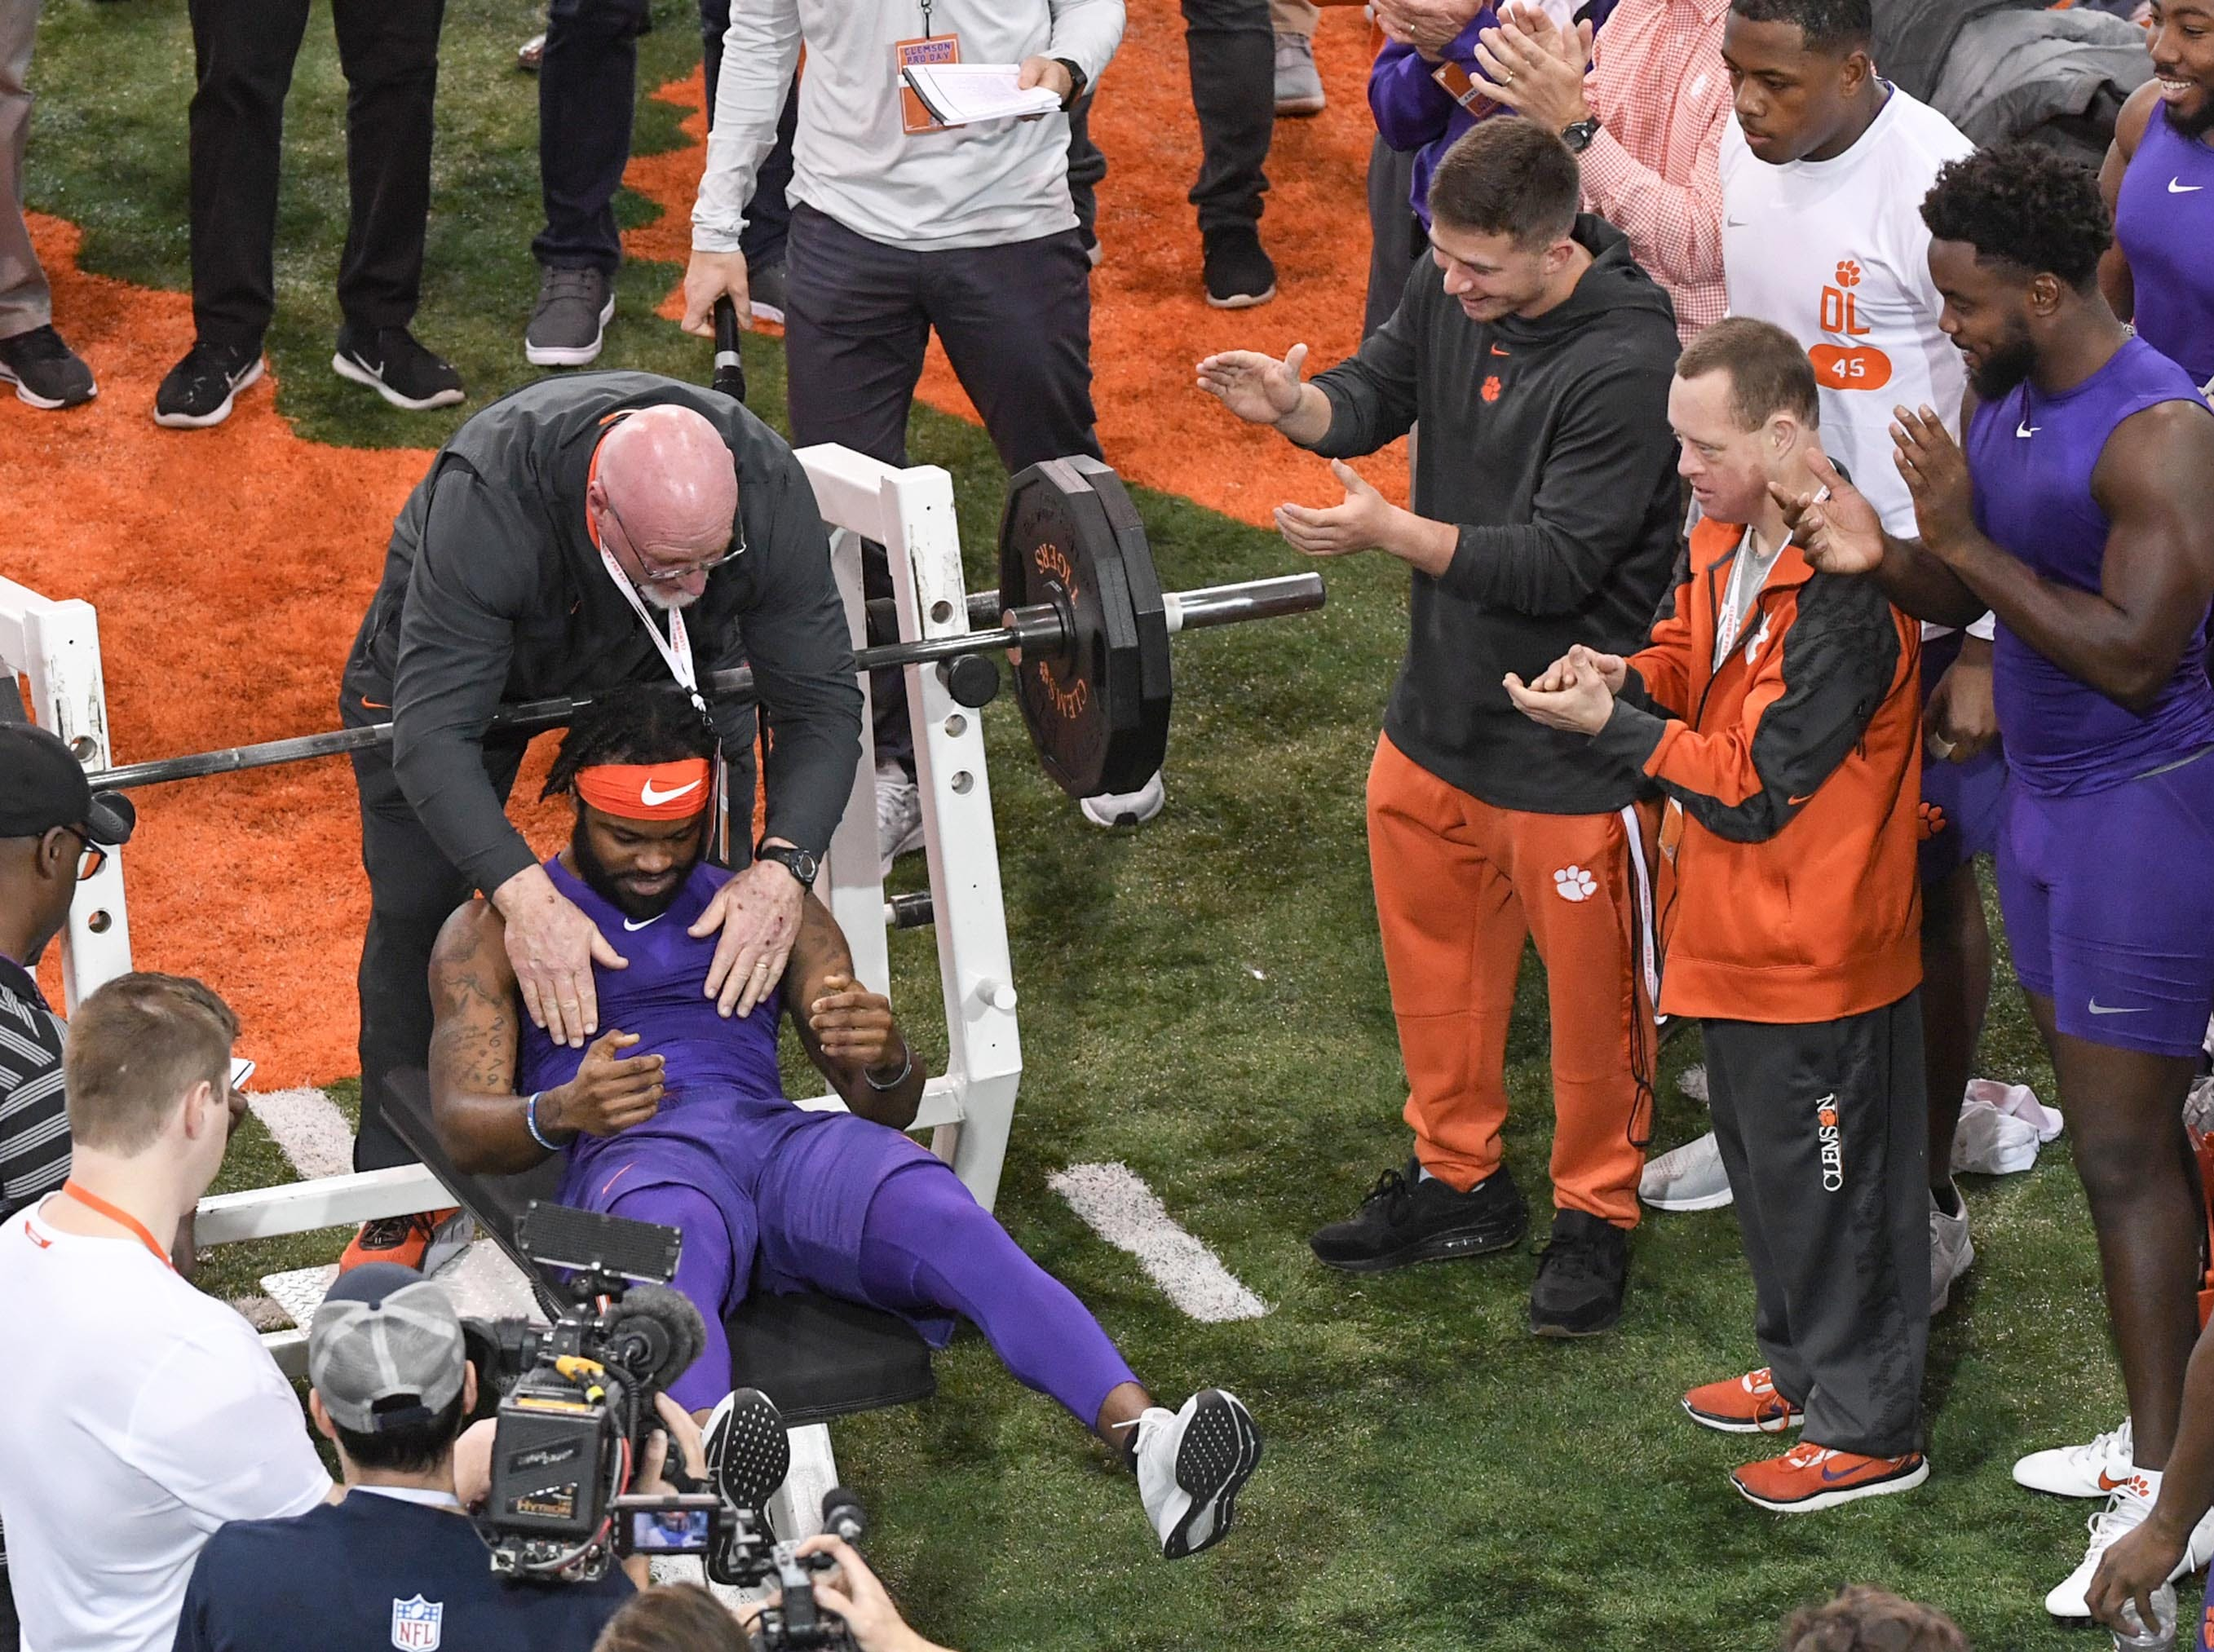 Wide receiver Trevion Thompson finishes a bench press test with 16 reps of 225 pounds during Clemson pro day at the Poe Indoor Facility in Clemson Thursday, March 14, 2019.